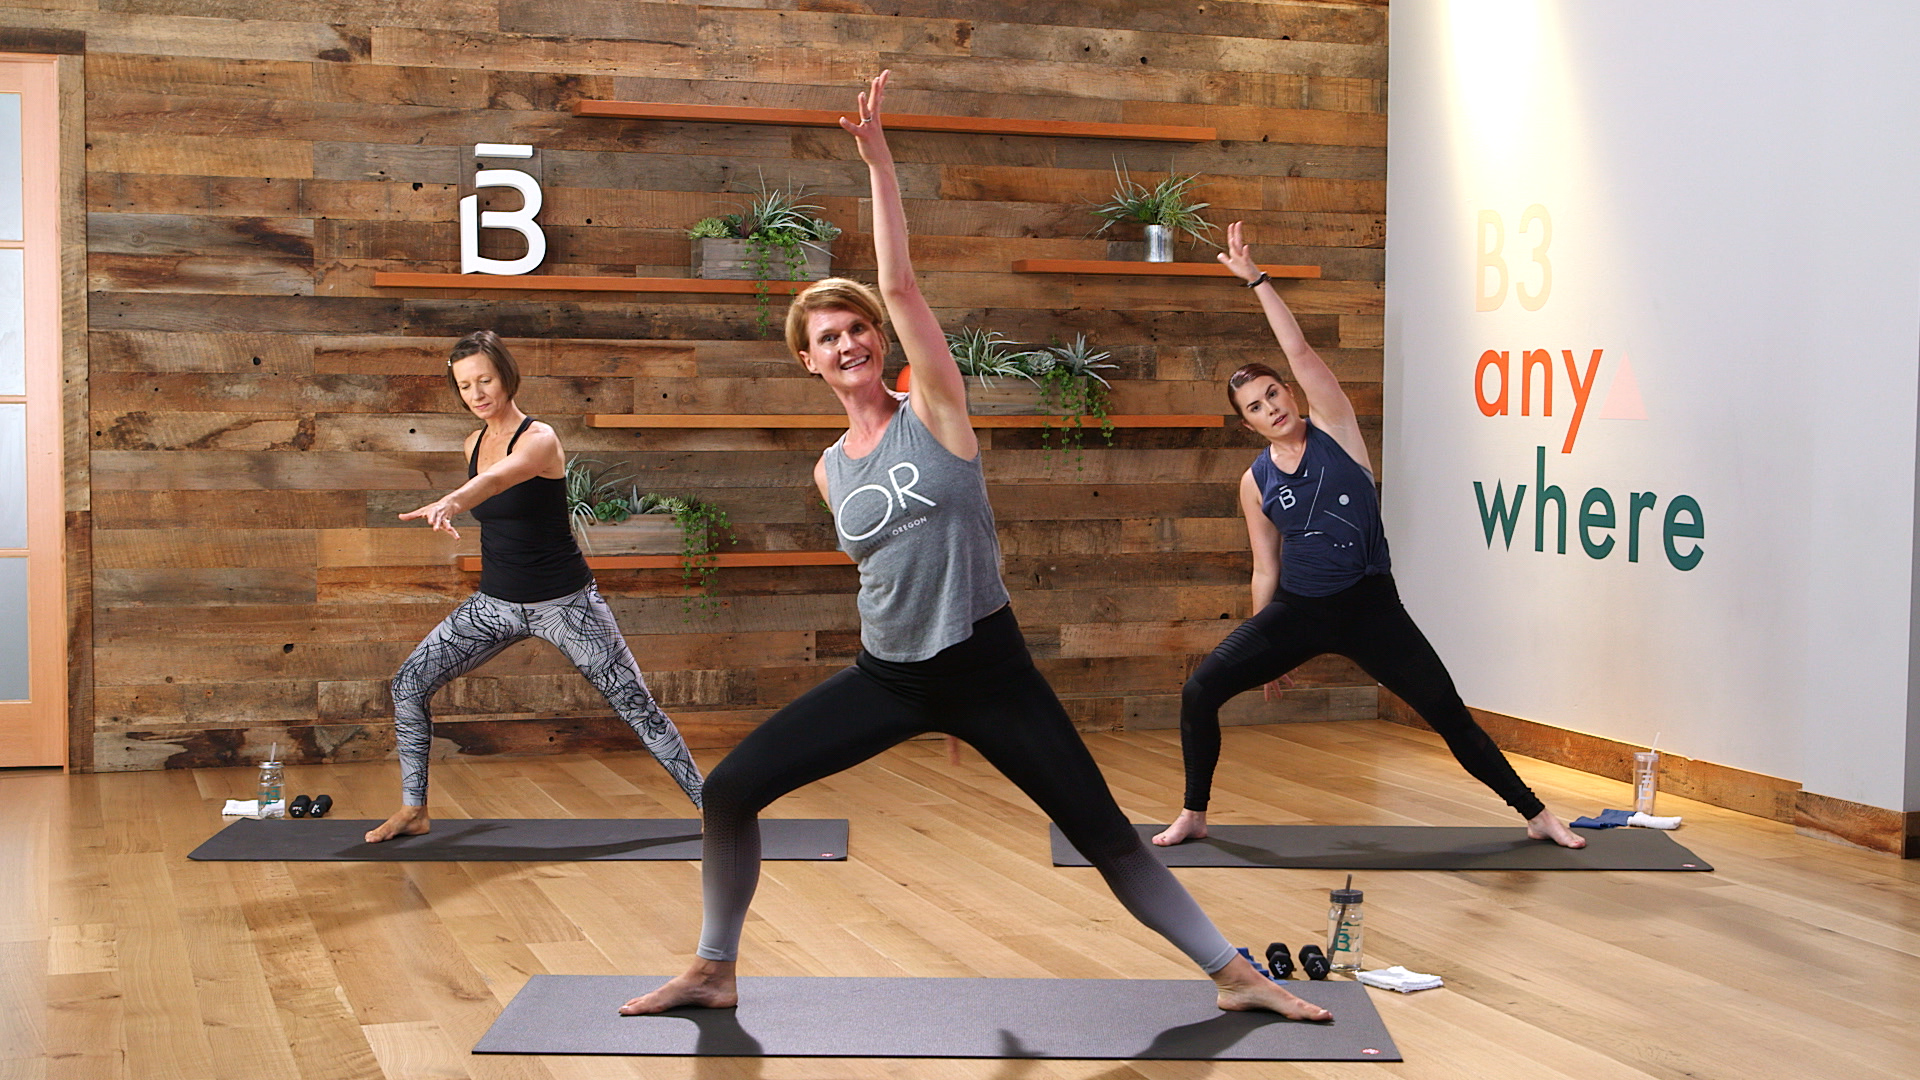 Women's Health Spotlight on barre3